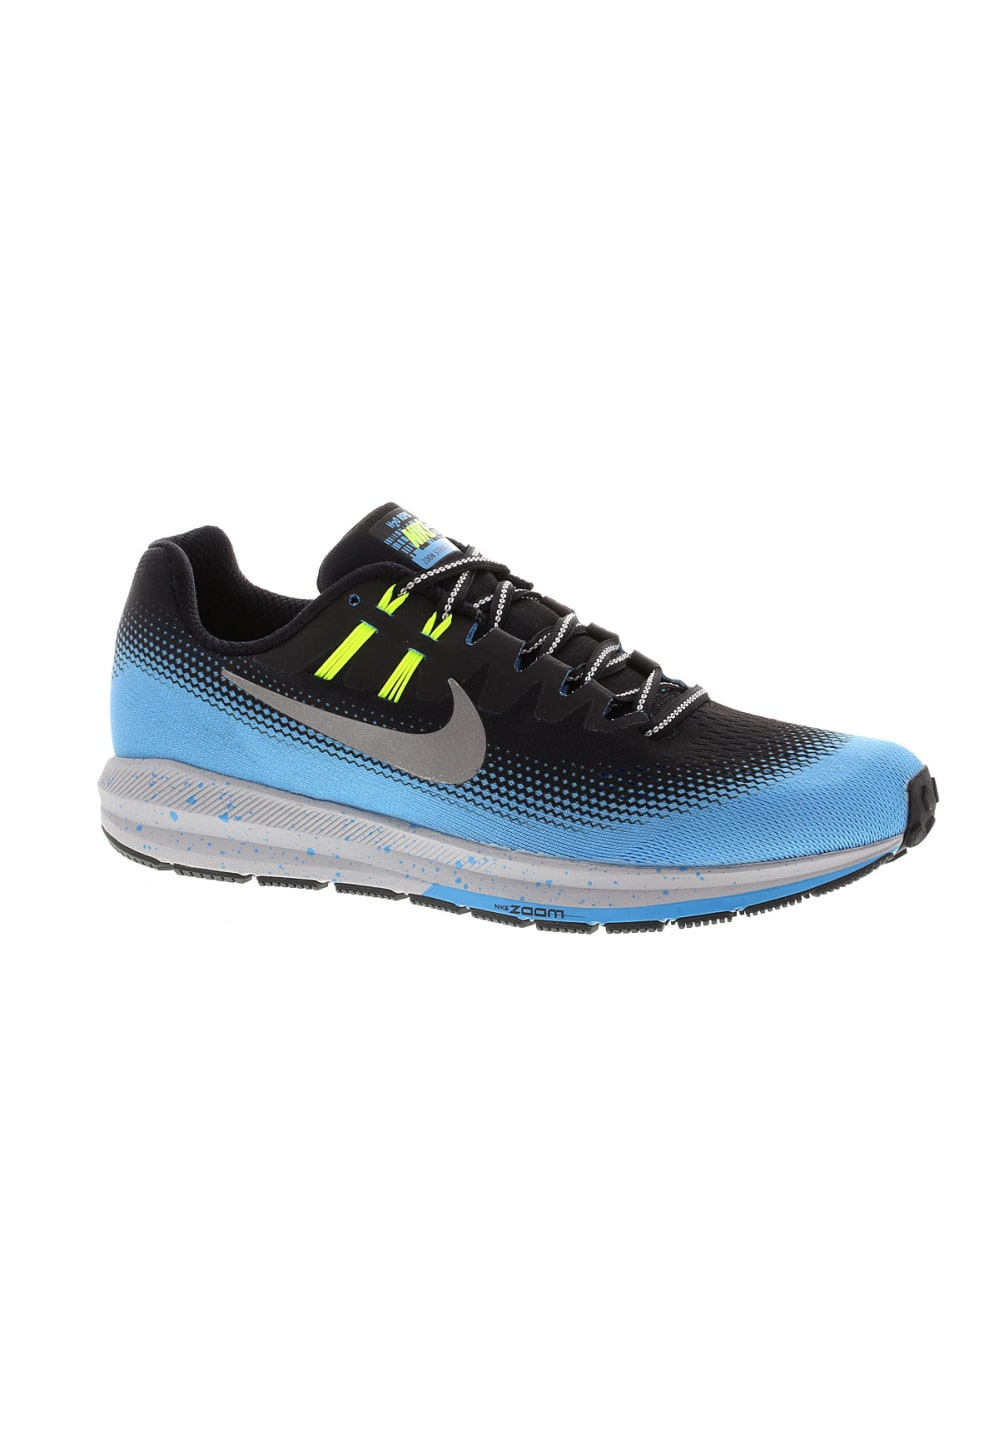 Homme Air Zoom Pour Shield Running 20 Chaussures Nike Structure xWEQdroCeB